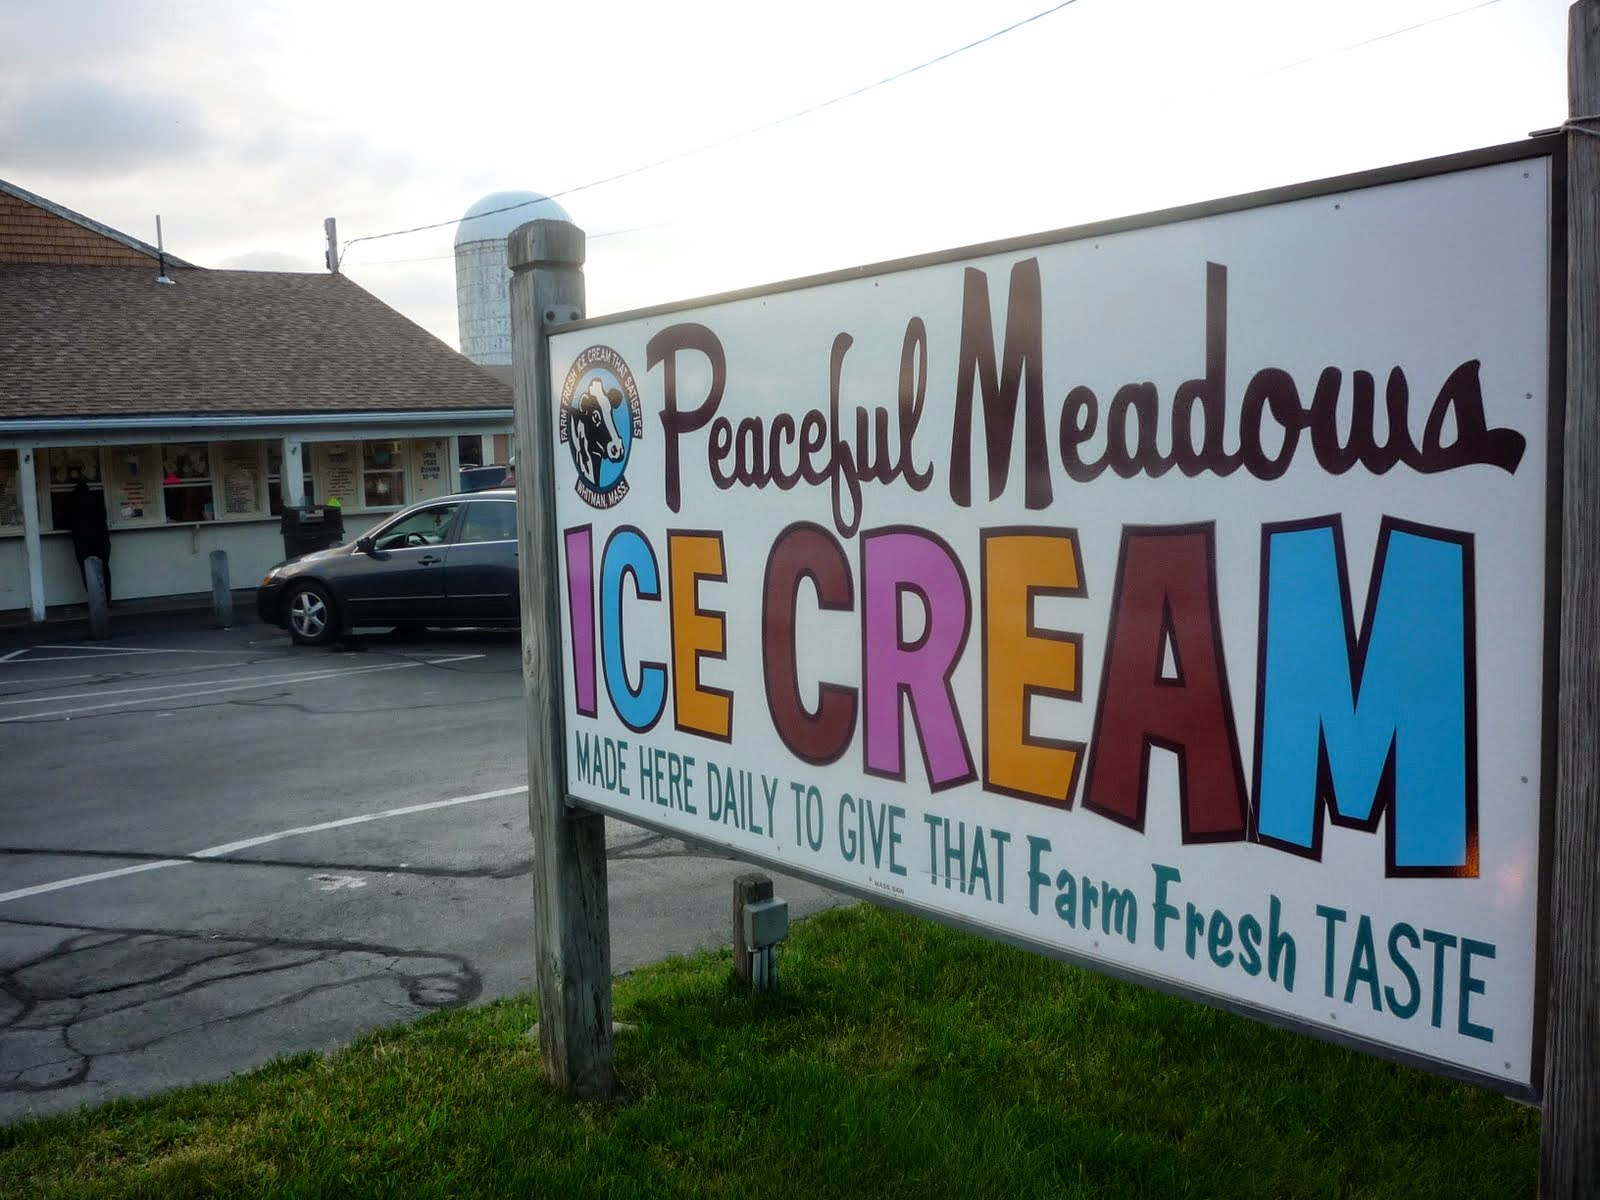 Peaceful Meadows ice cream, Whitman, Massachusetts